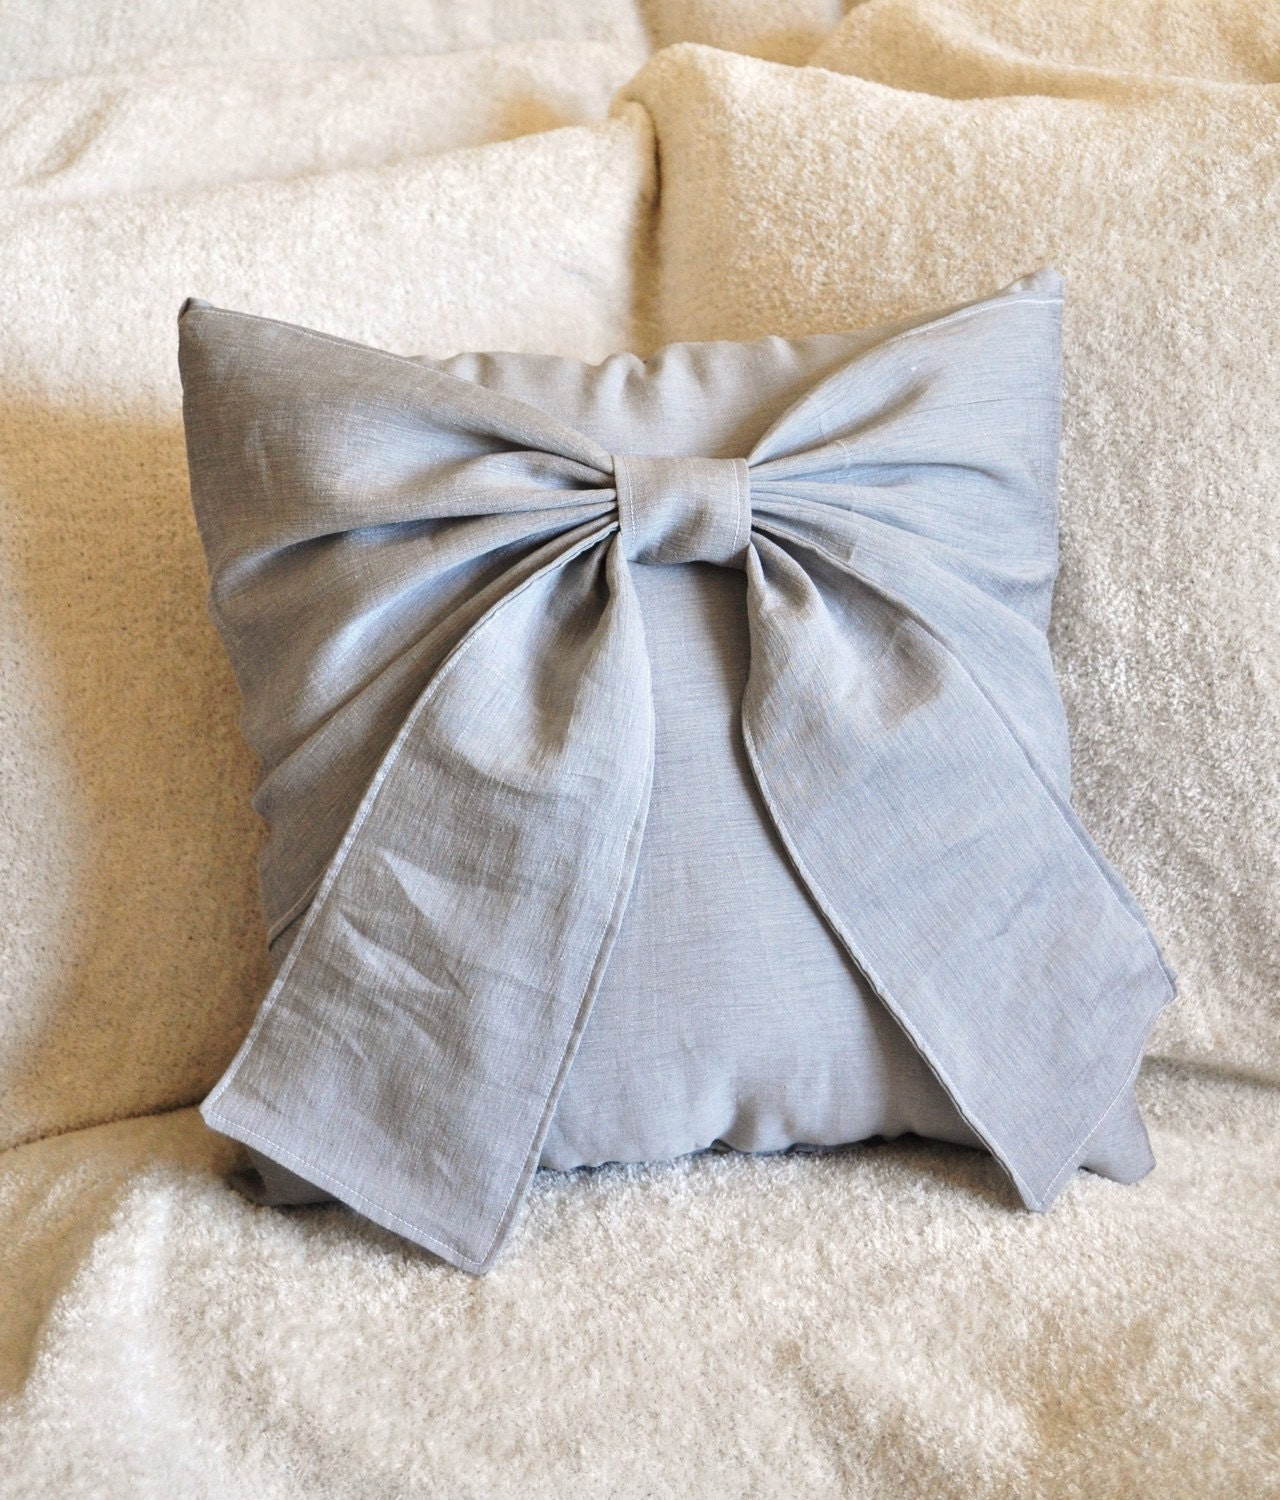 Decorative Pillow With Bow : Gray Bow Pillow Decorative Throw Bow 14 x 14 Pillow